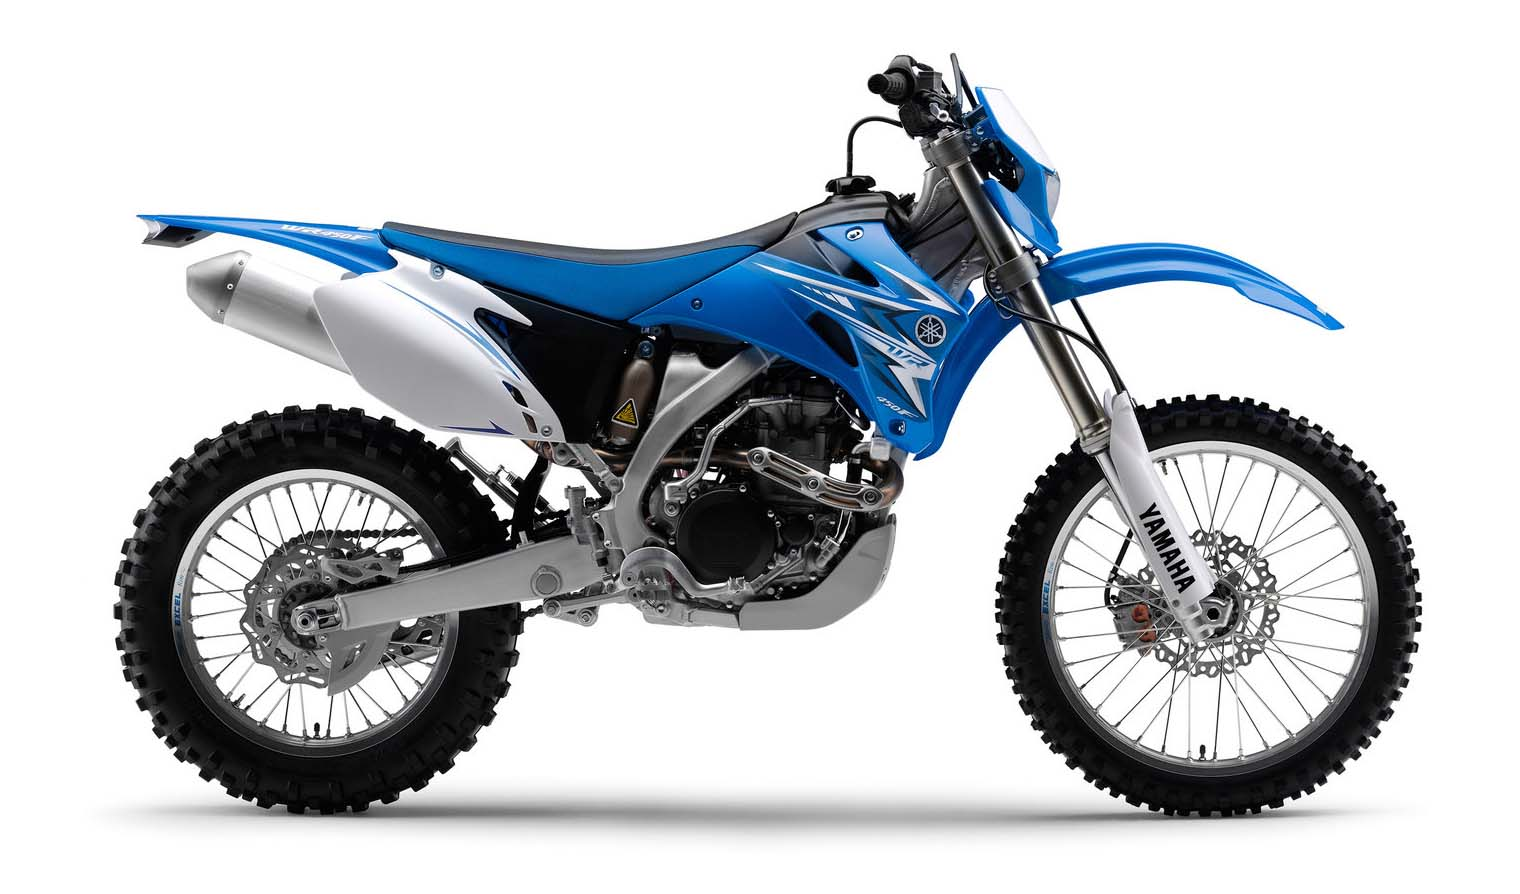 yamaha wr 450f specs 2003 2004 2005 2006 2007 2008 2009 2010 2011 2012 2013 2014. Black Bedroom Furniture Sets. Home Design Ideas